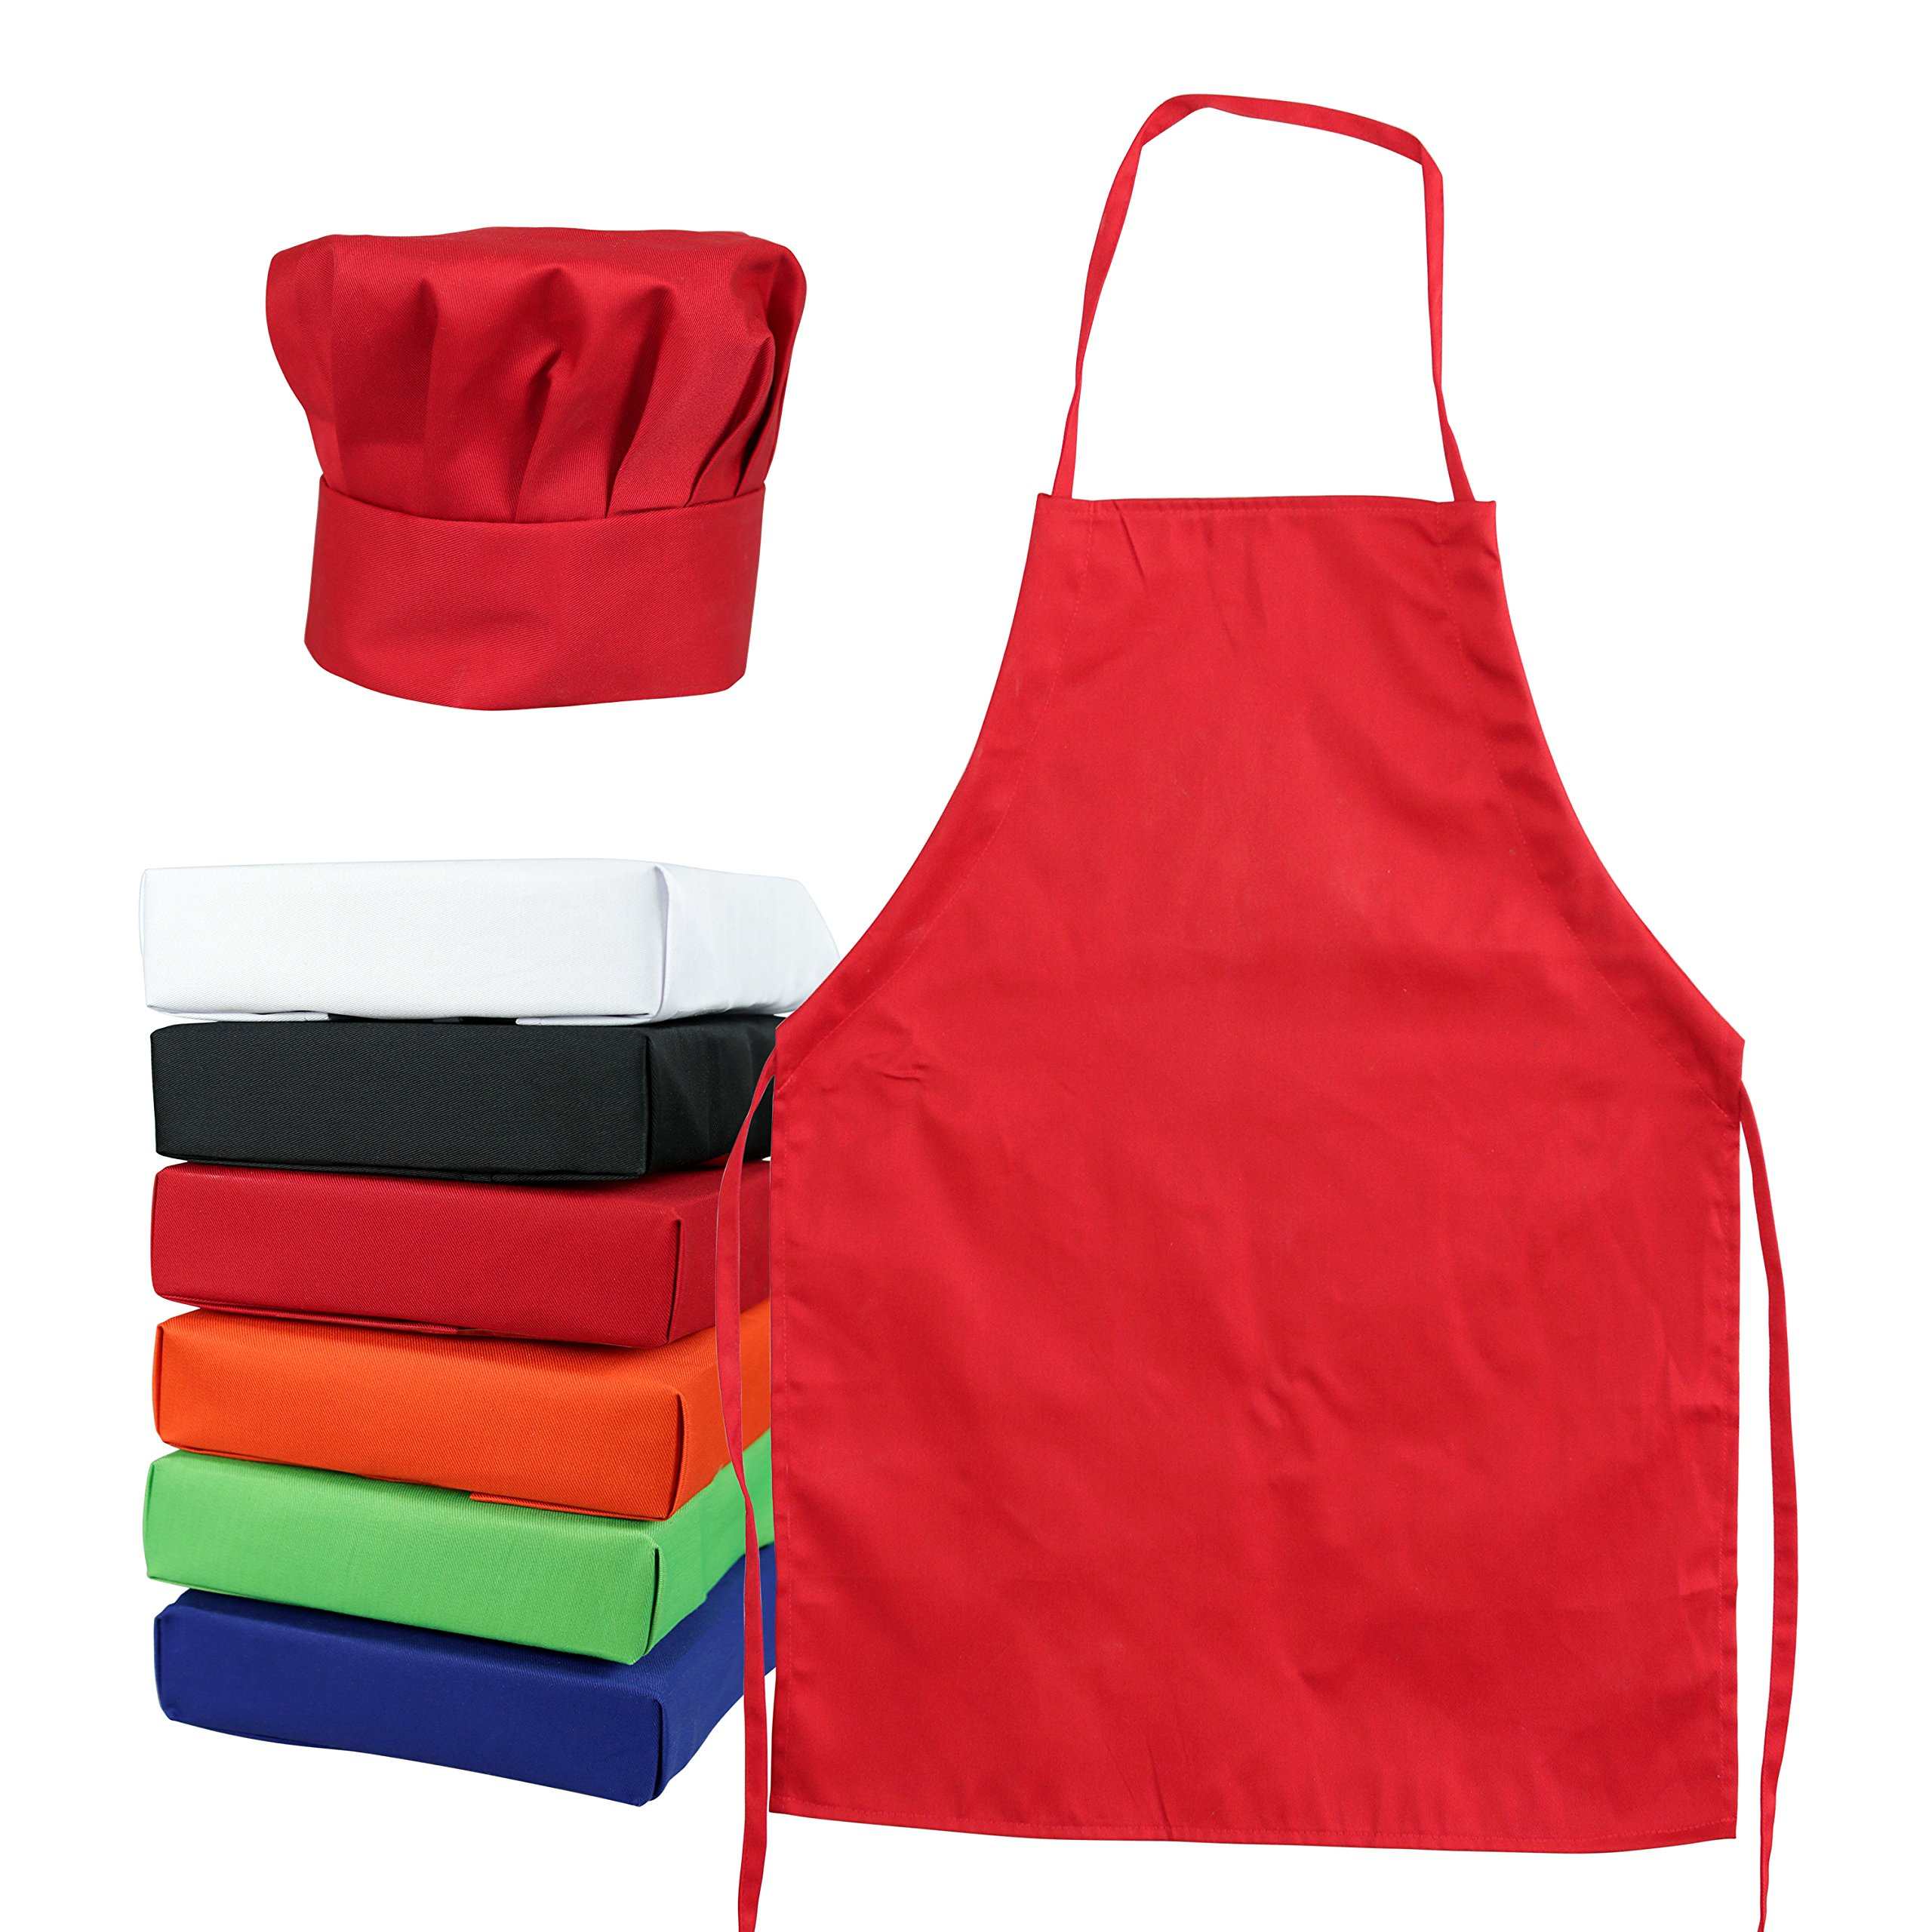 Odelia Kids Chef Hat Apron - Kitchen Cooking Baking Wear (S 2-5 Year, Red)